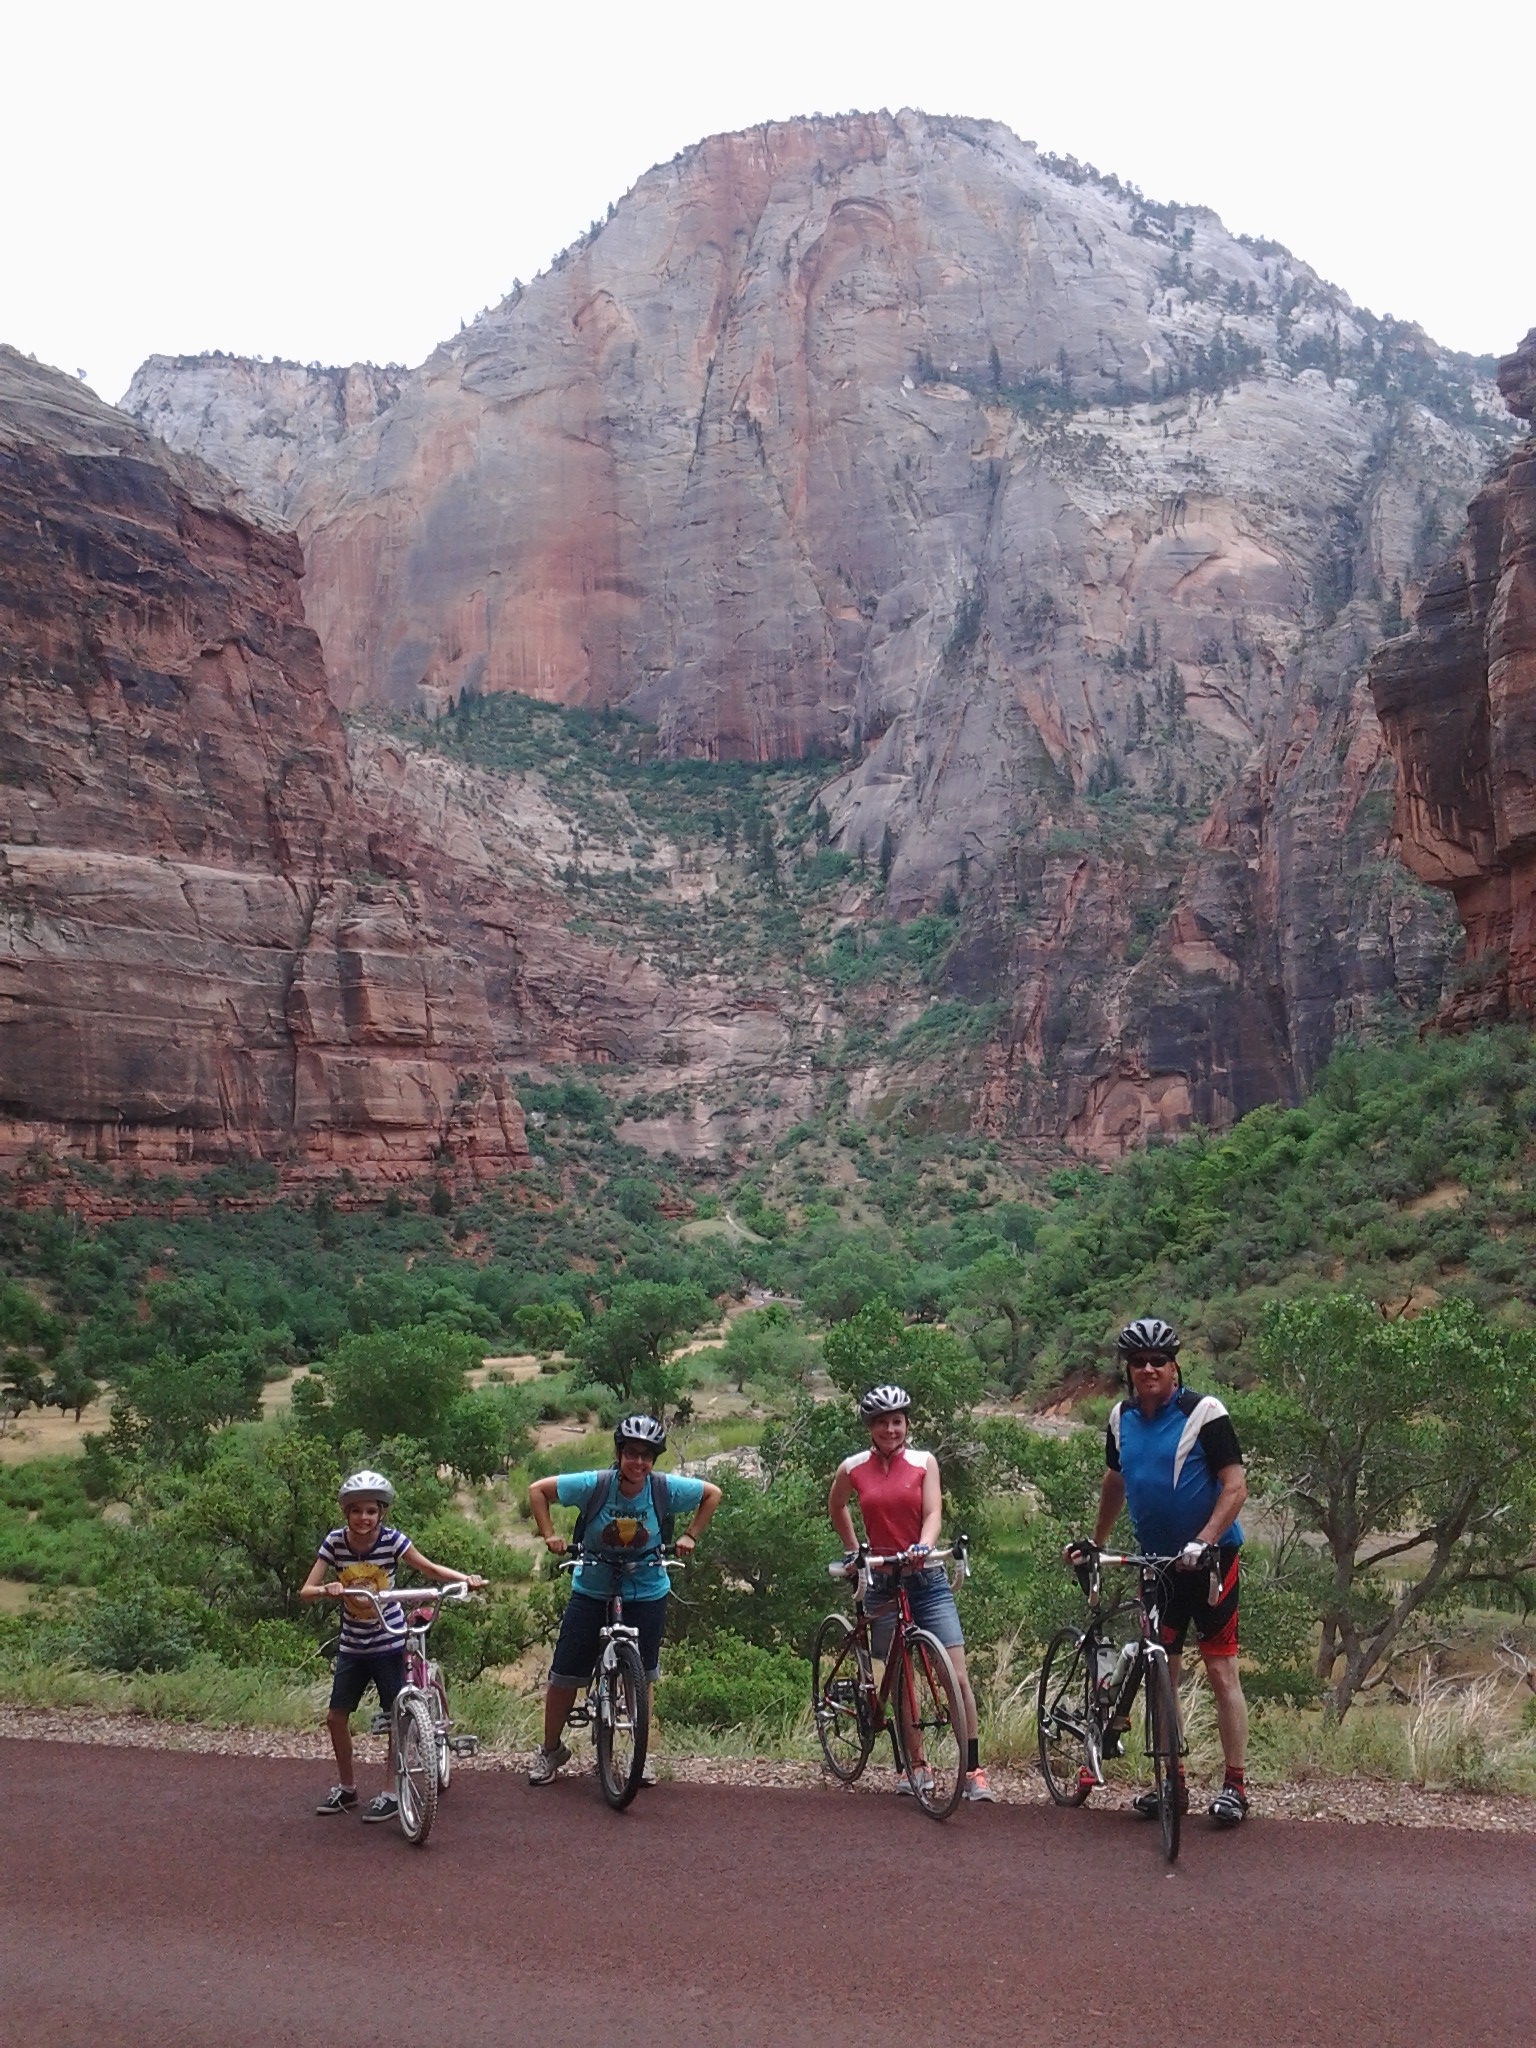 (L-R), Leah Wadsworth, Melissa Wadsworth, Caitlyn Hunsaker, and Scott Hunsaker, pausing for a photo opportunity during a bicycle ride through Zion Canyon, Utah, July 1, 2016 | Photo by Reuben Wadsworth, St. George News